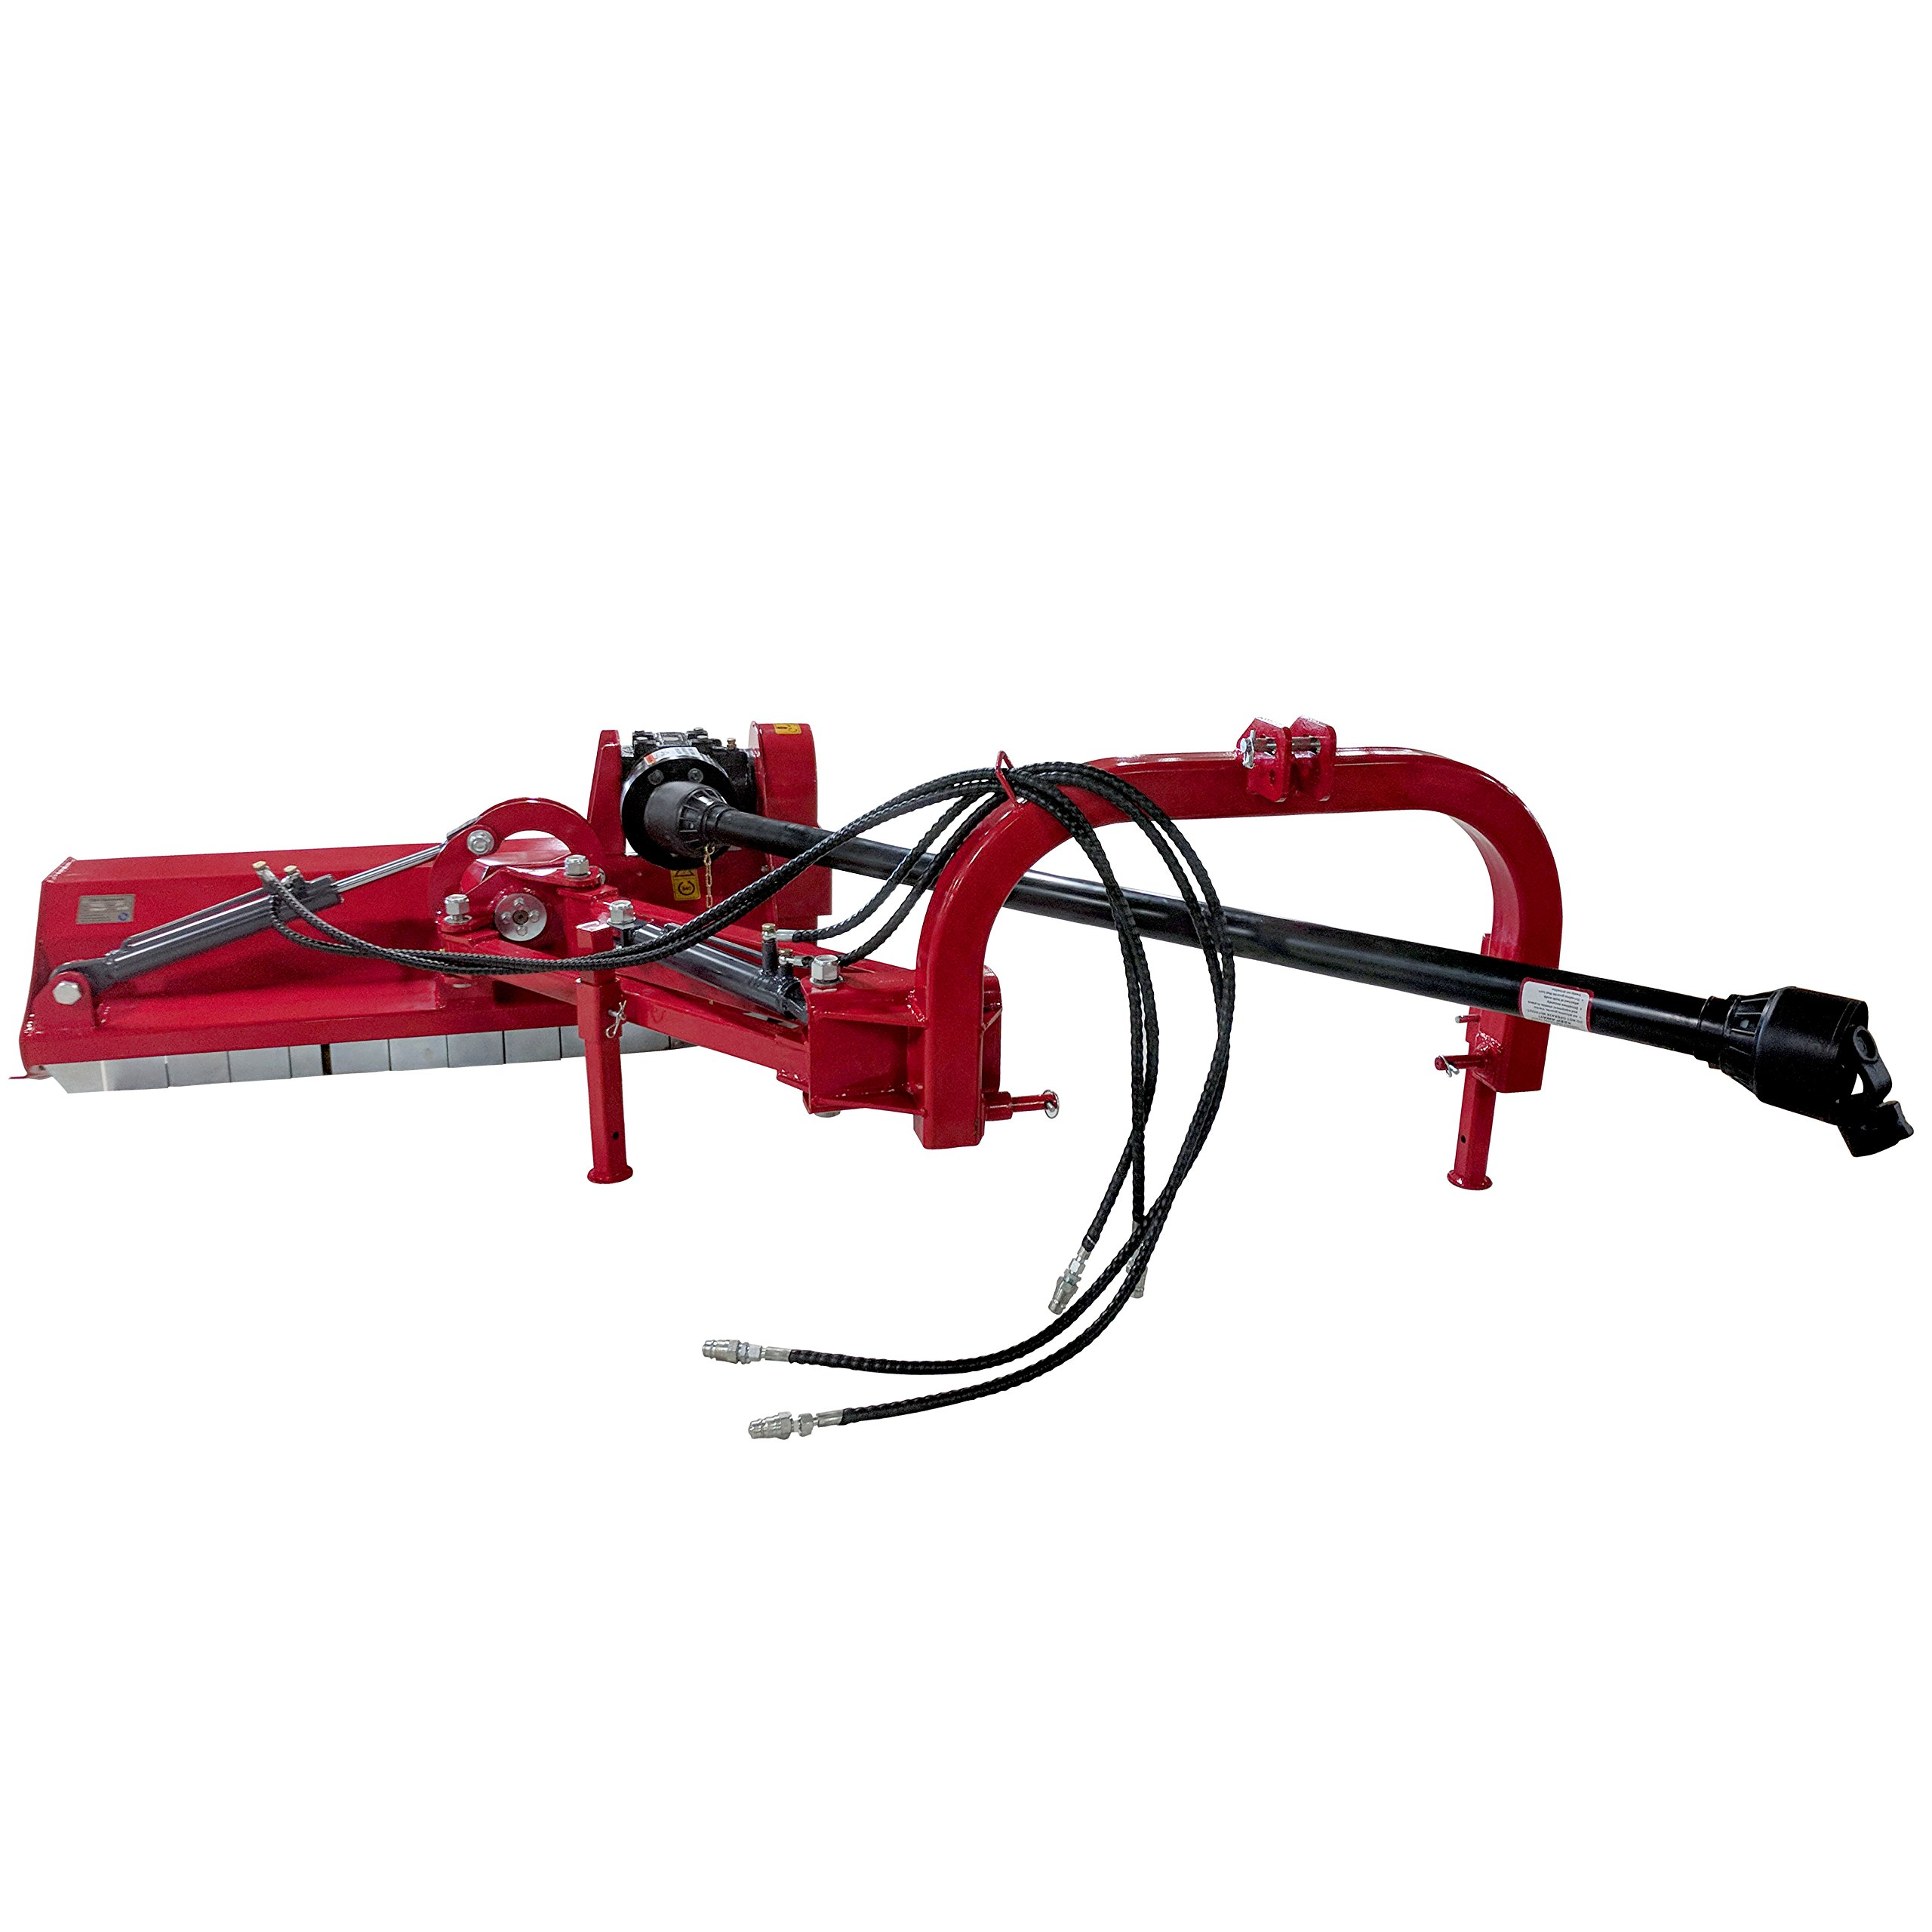 Titan 65'' 3-Point Offset Flail Ditch Bank Mower